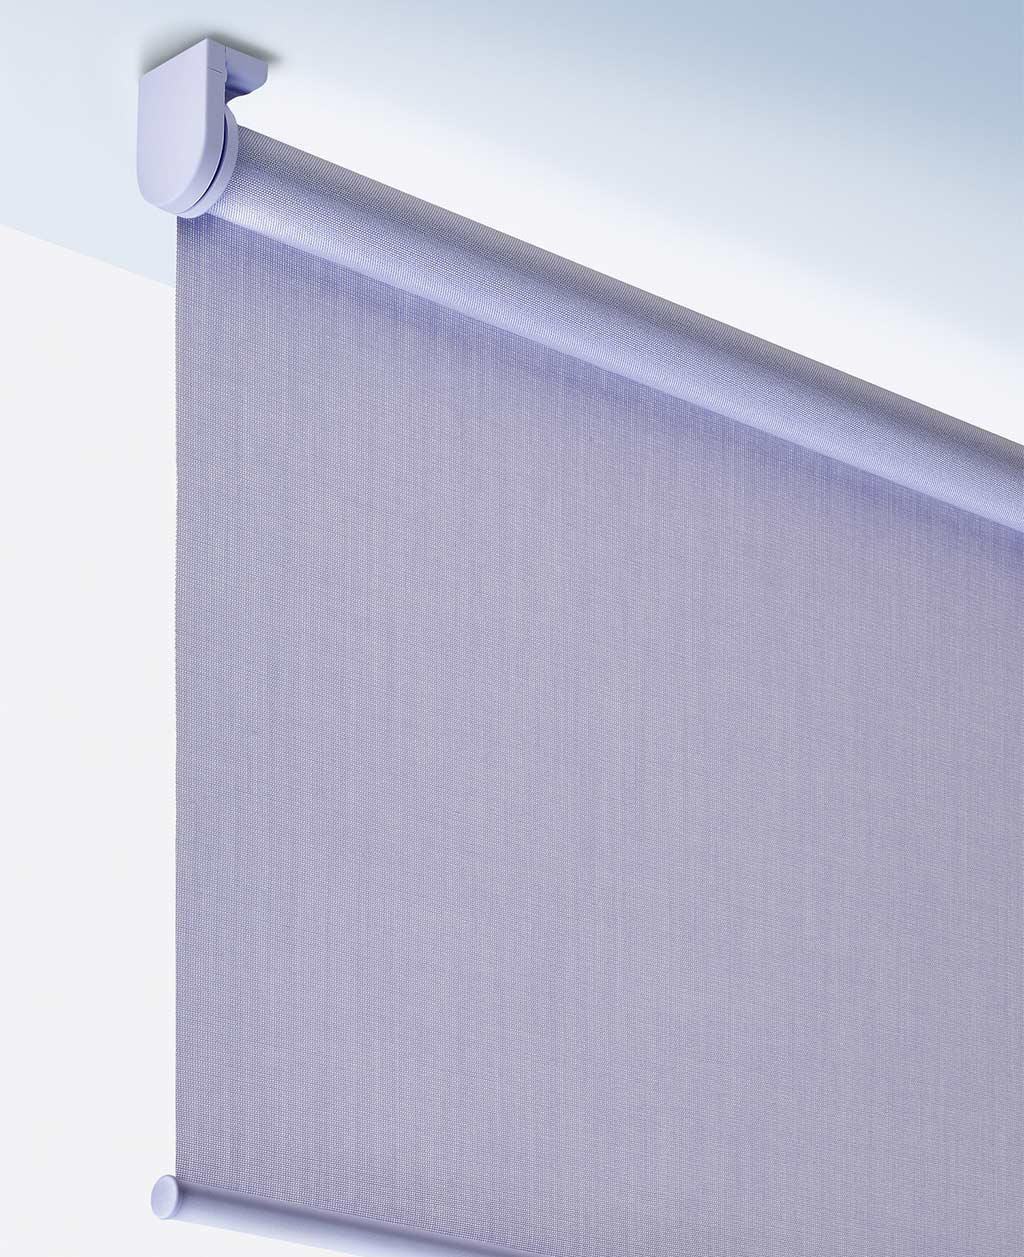 Custom roller blinds using Colorama 2 closeup